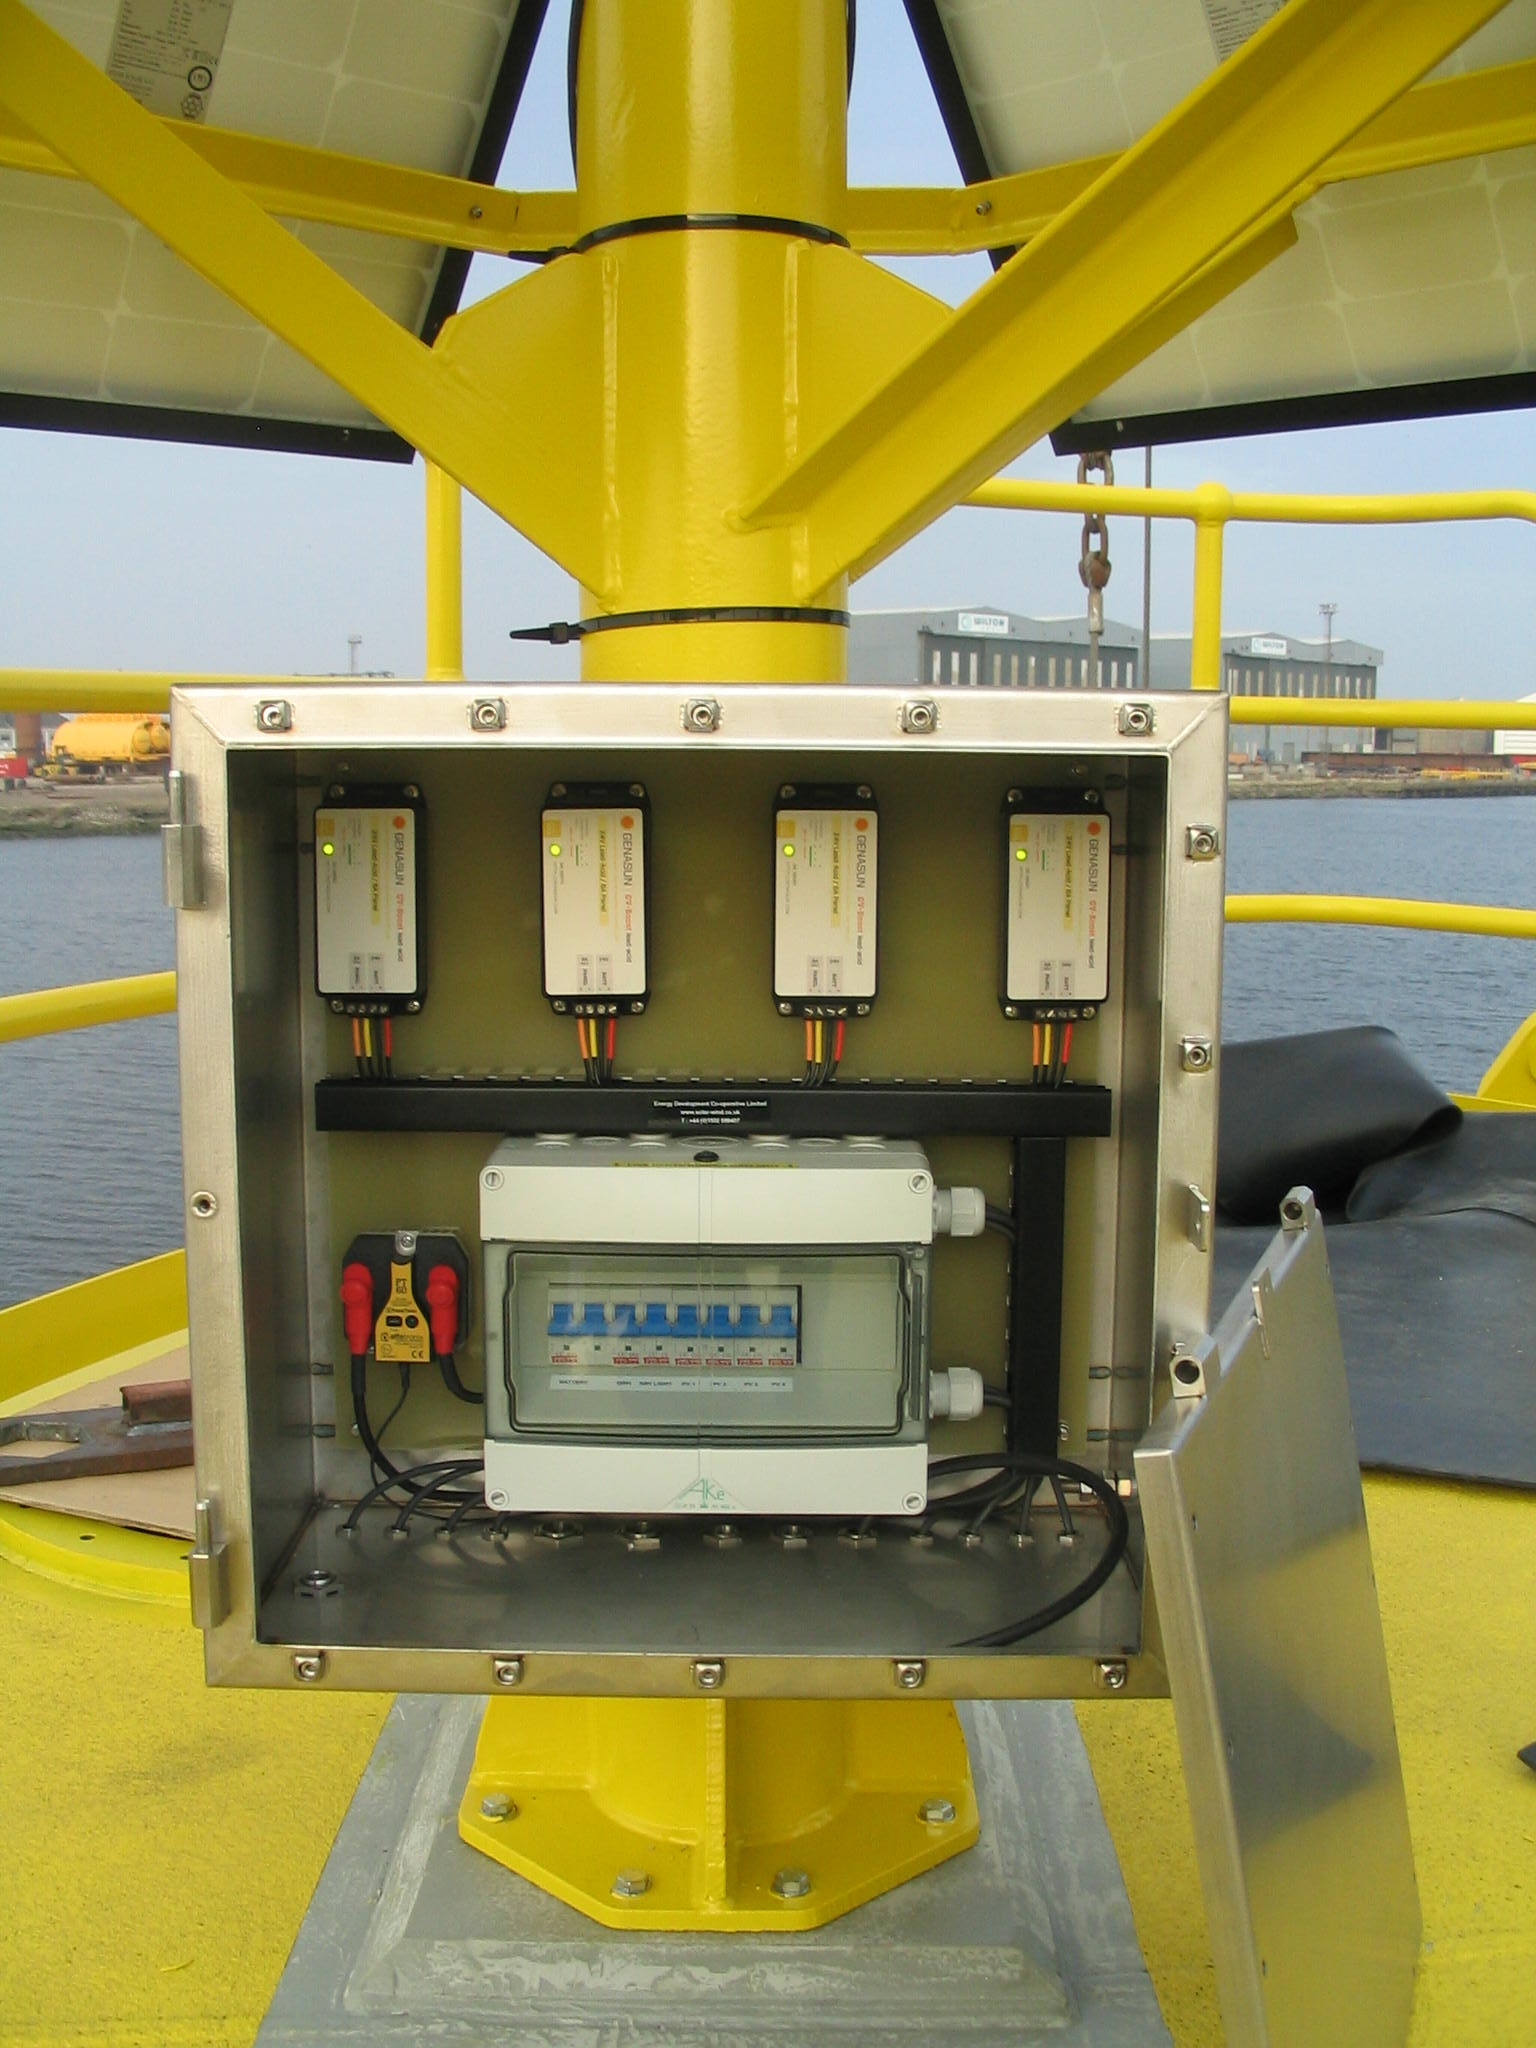 off-grid solar installation marine buoy